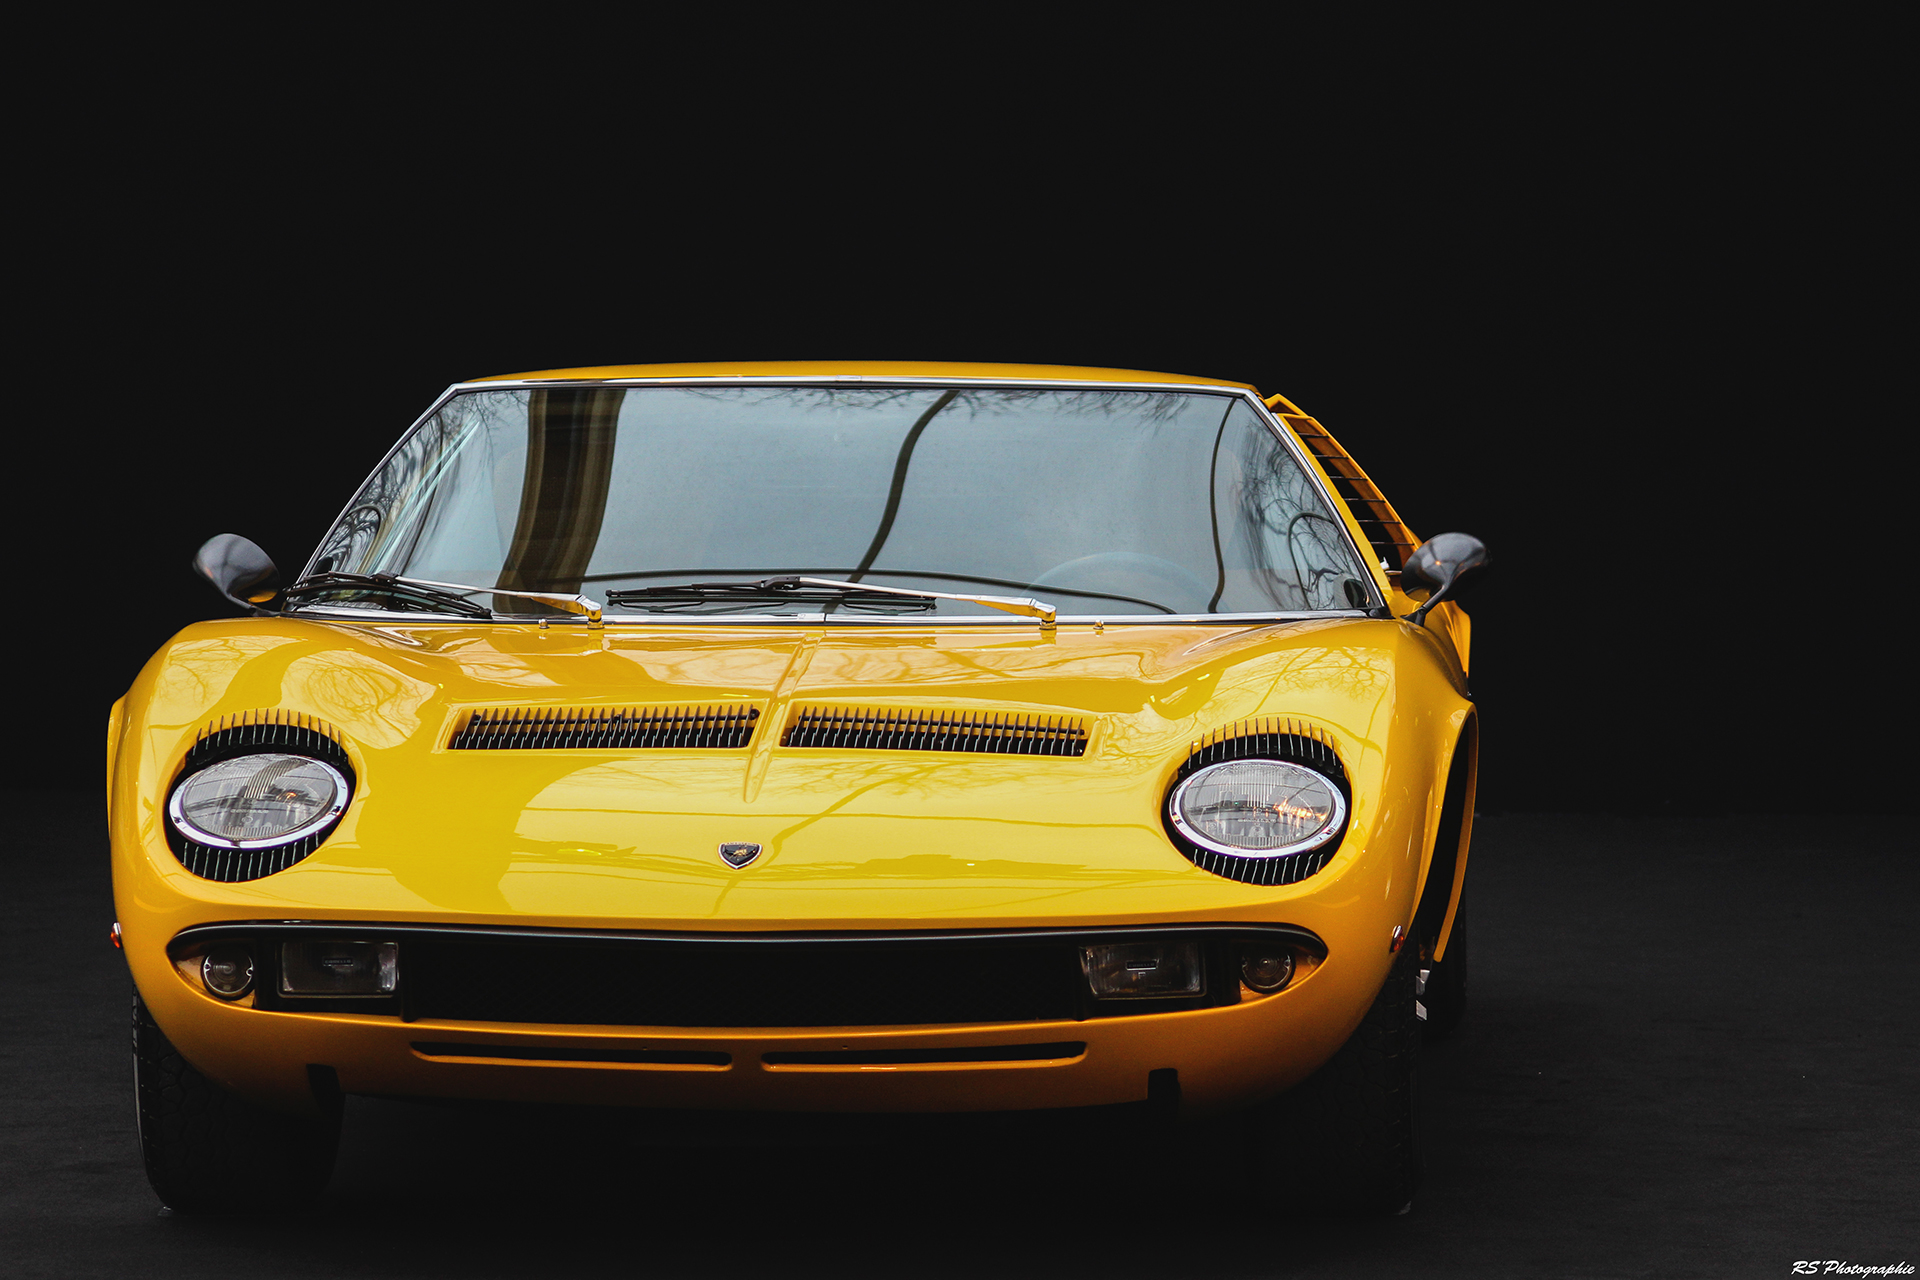 Lamborghini Miura - Exposition Concept cars 2016 - Arnaud Demasier RS Photographie